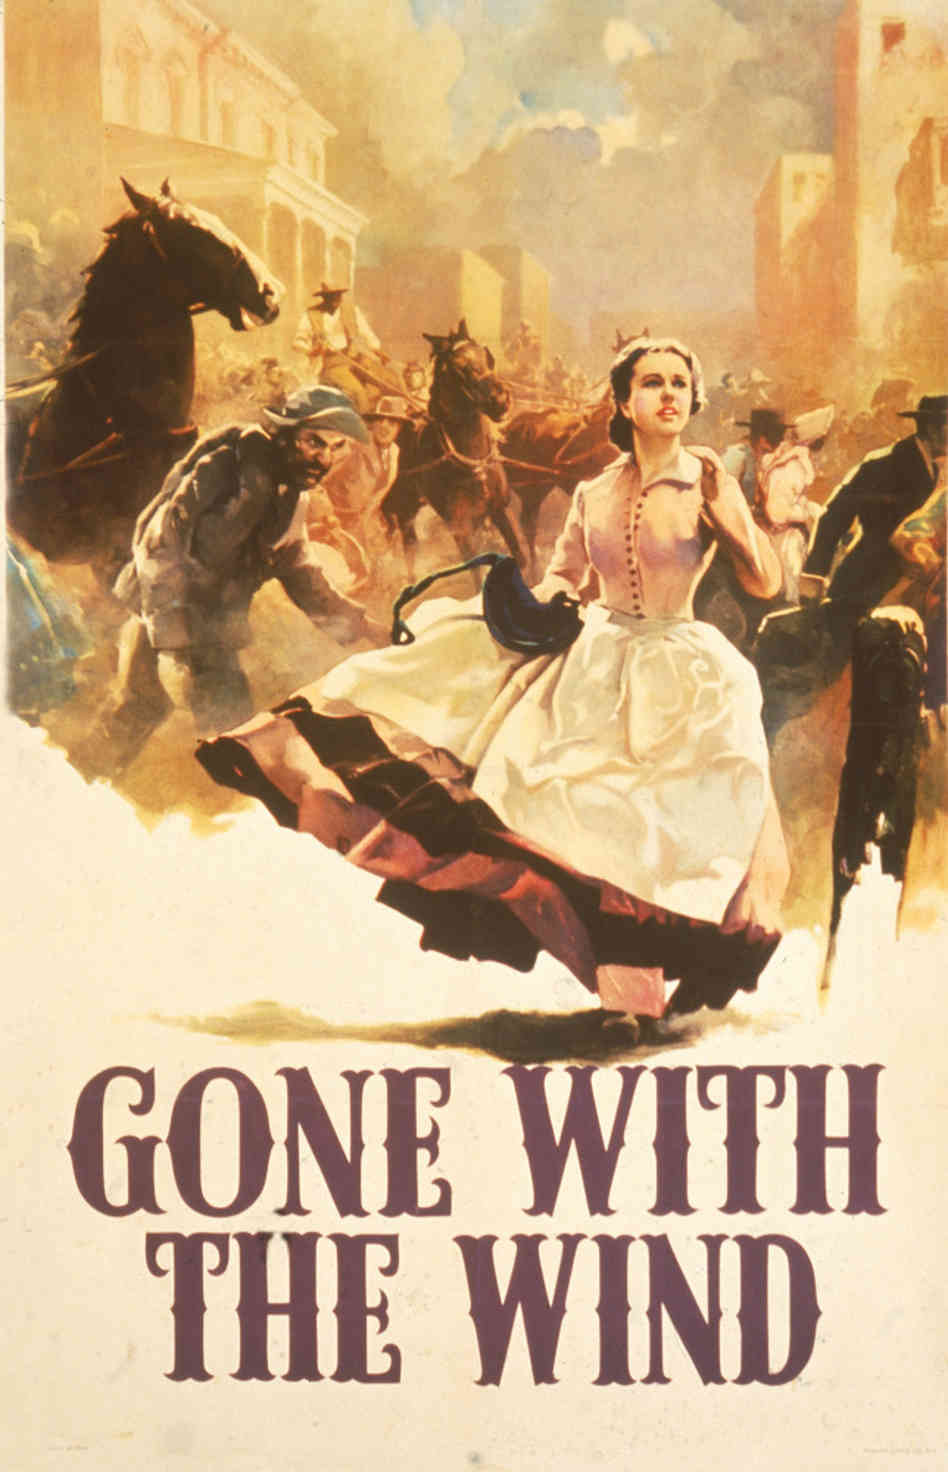 5.GONE WITH THE WIND by Margaret Mitchell